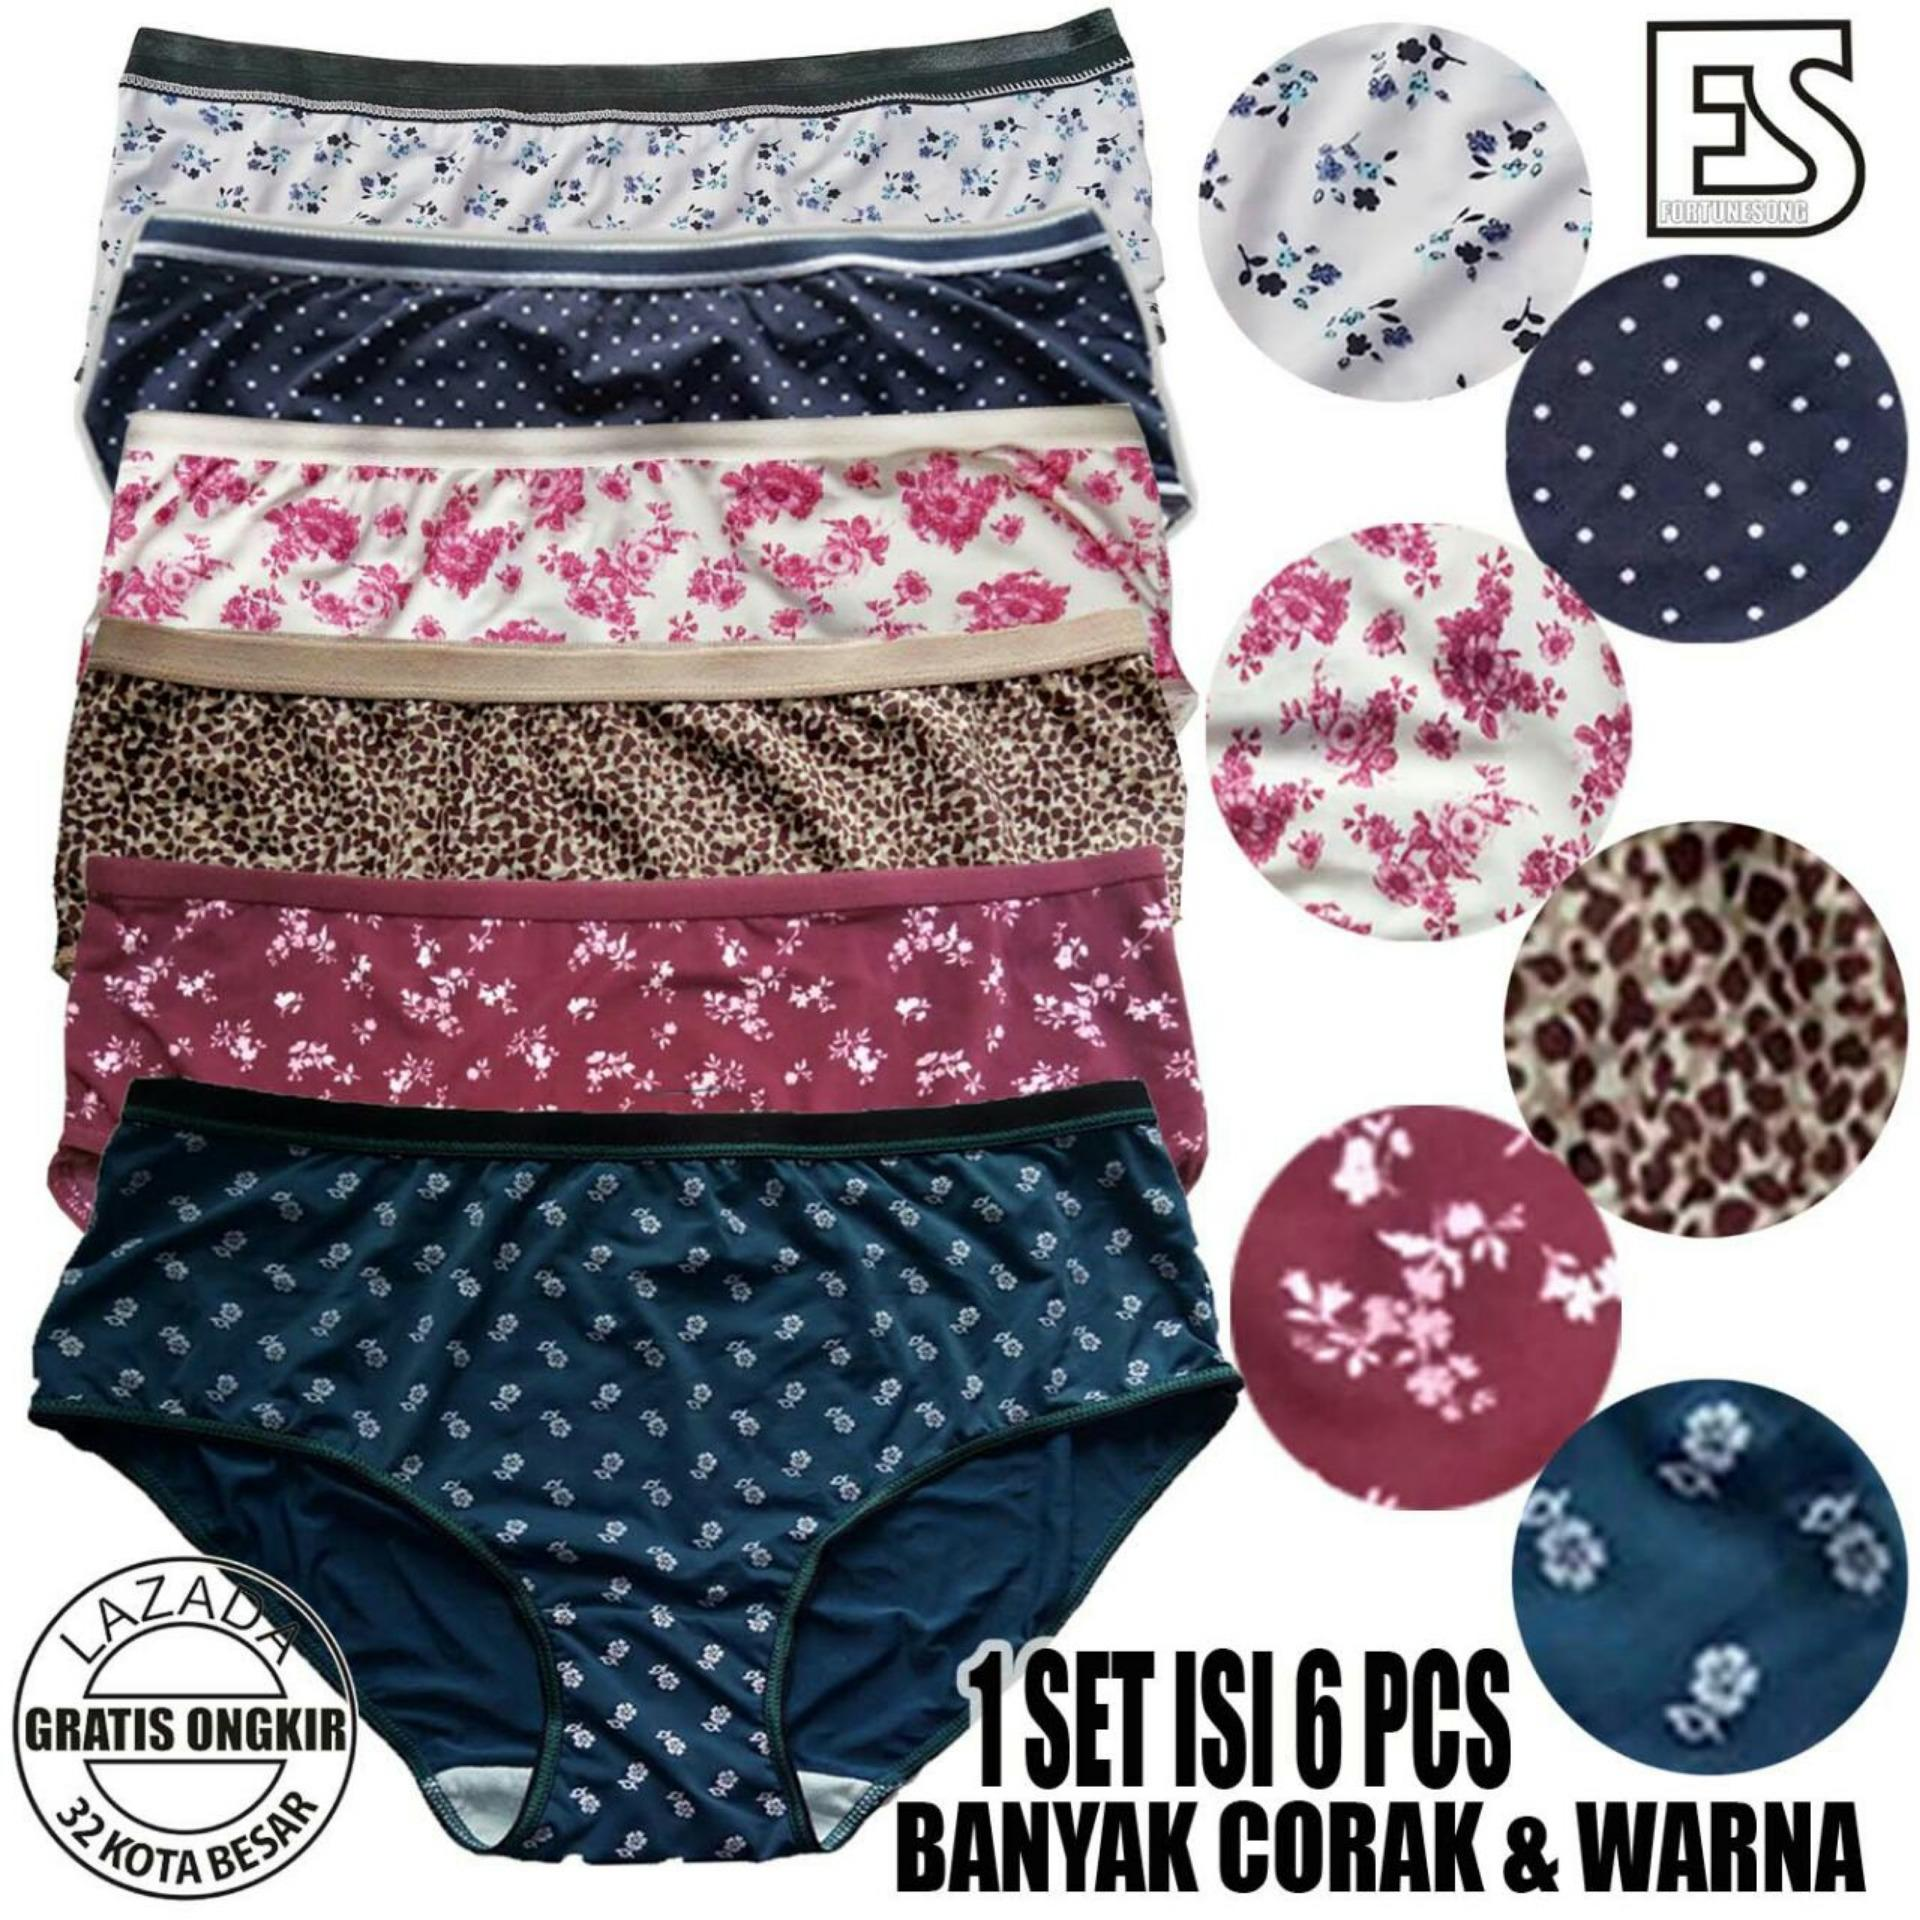 Fs'Fashion - 6 Pcs Ladies Colourfull Panties / Celana Dalam Wanita